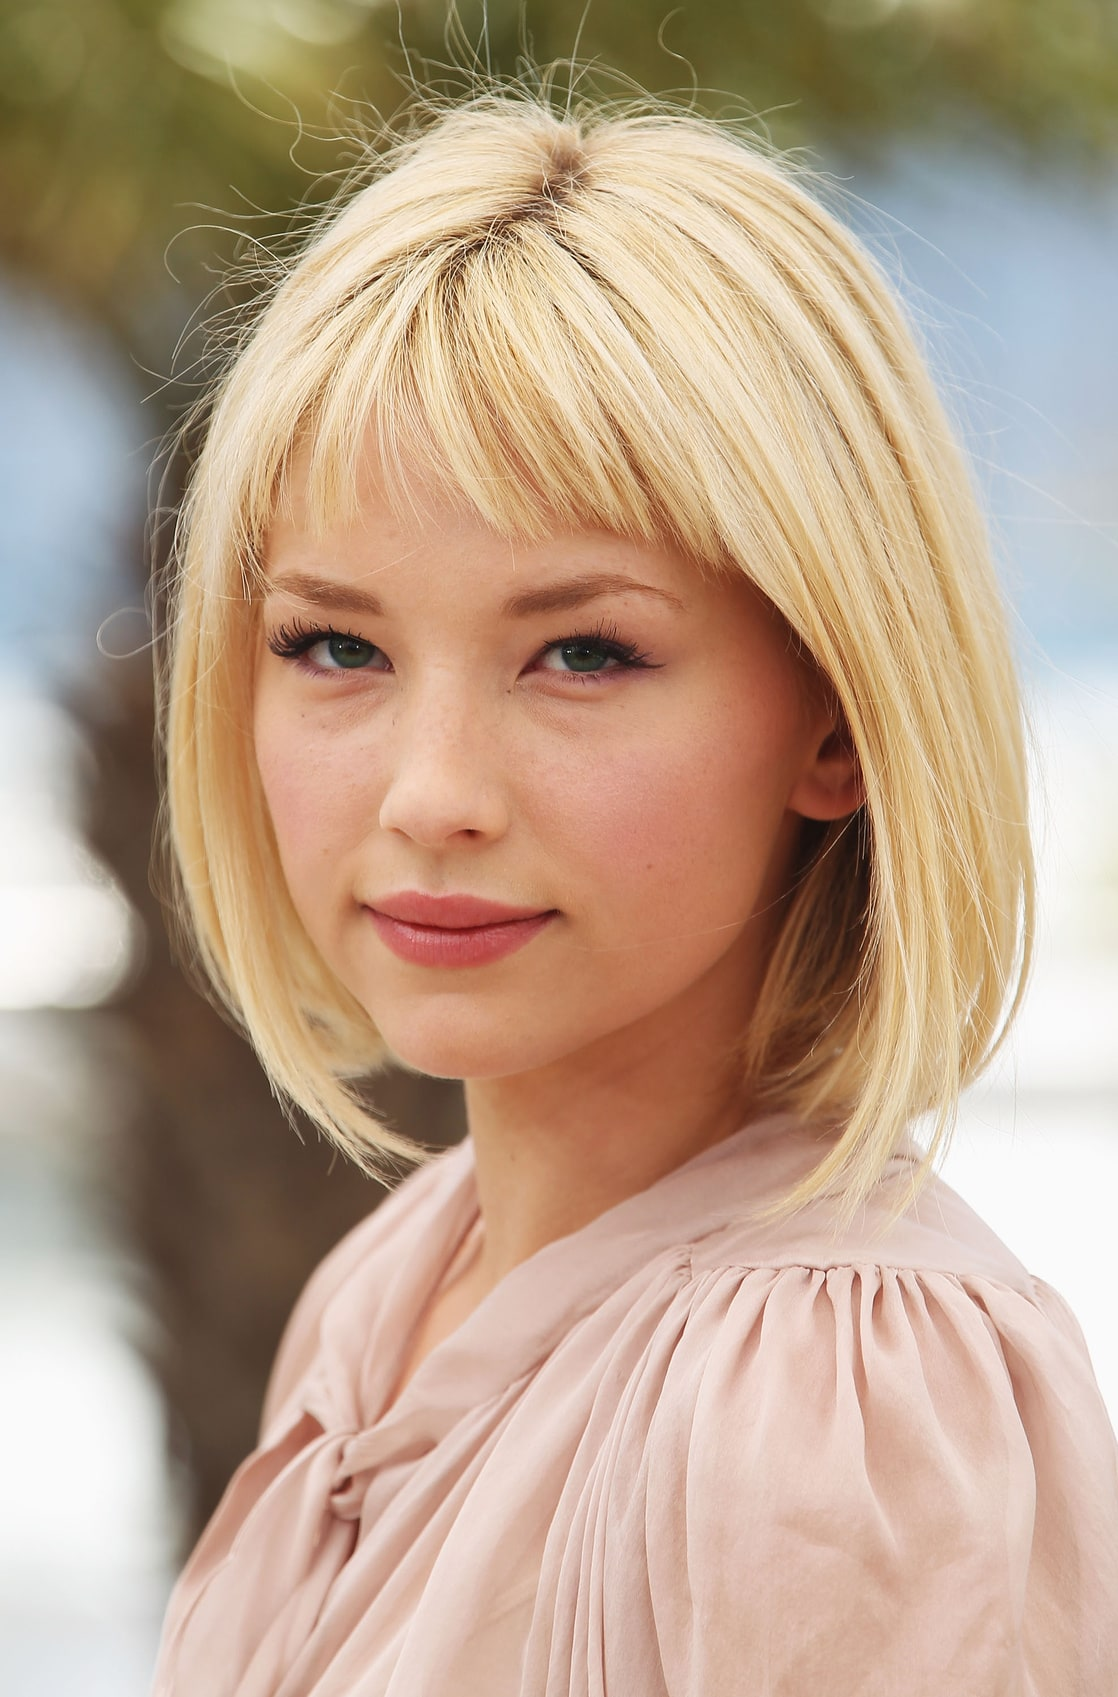 picture of haley bennett. Black Bedroom Furniture Sets. Home Design Ideas